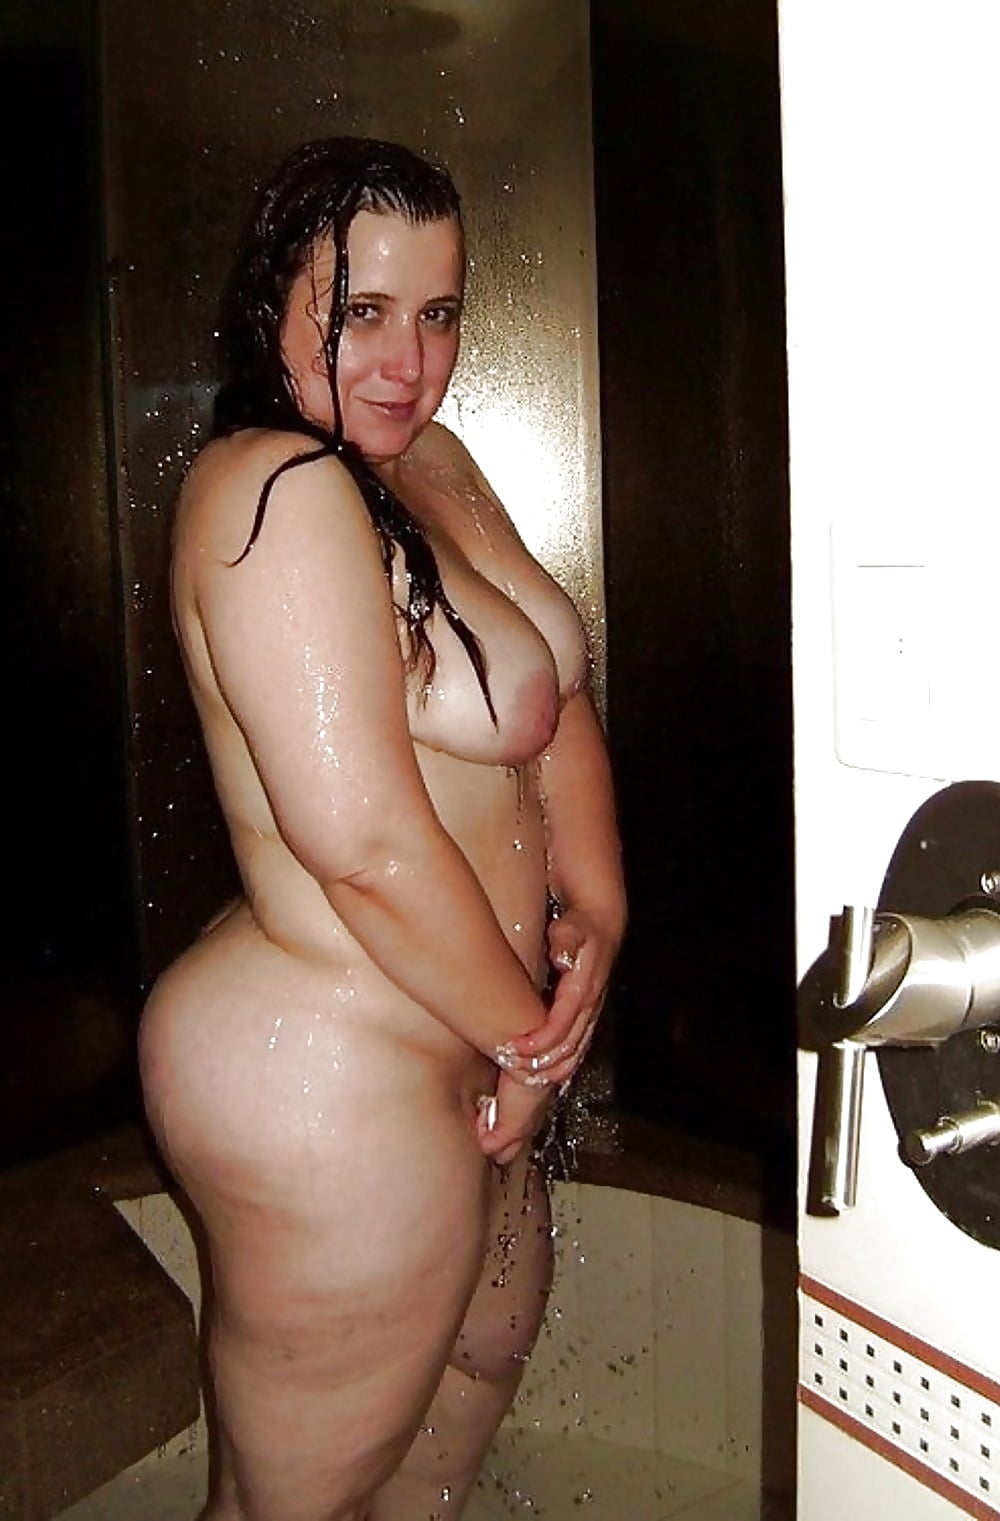 Fat naked women in shower, xhamster skank wife slow fucked